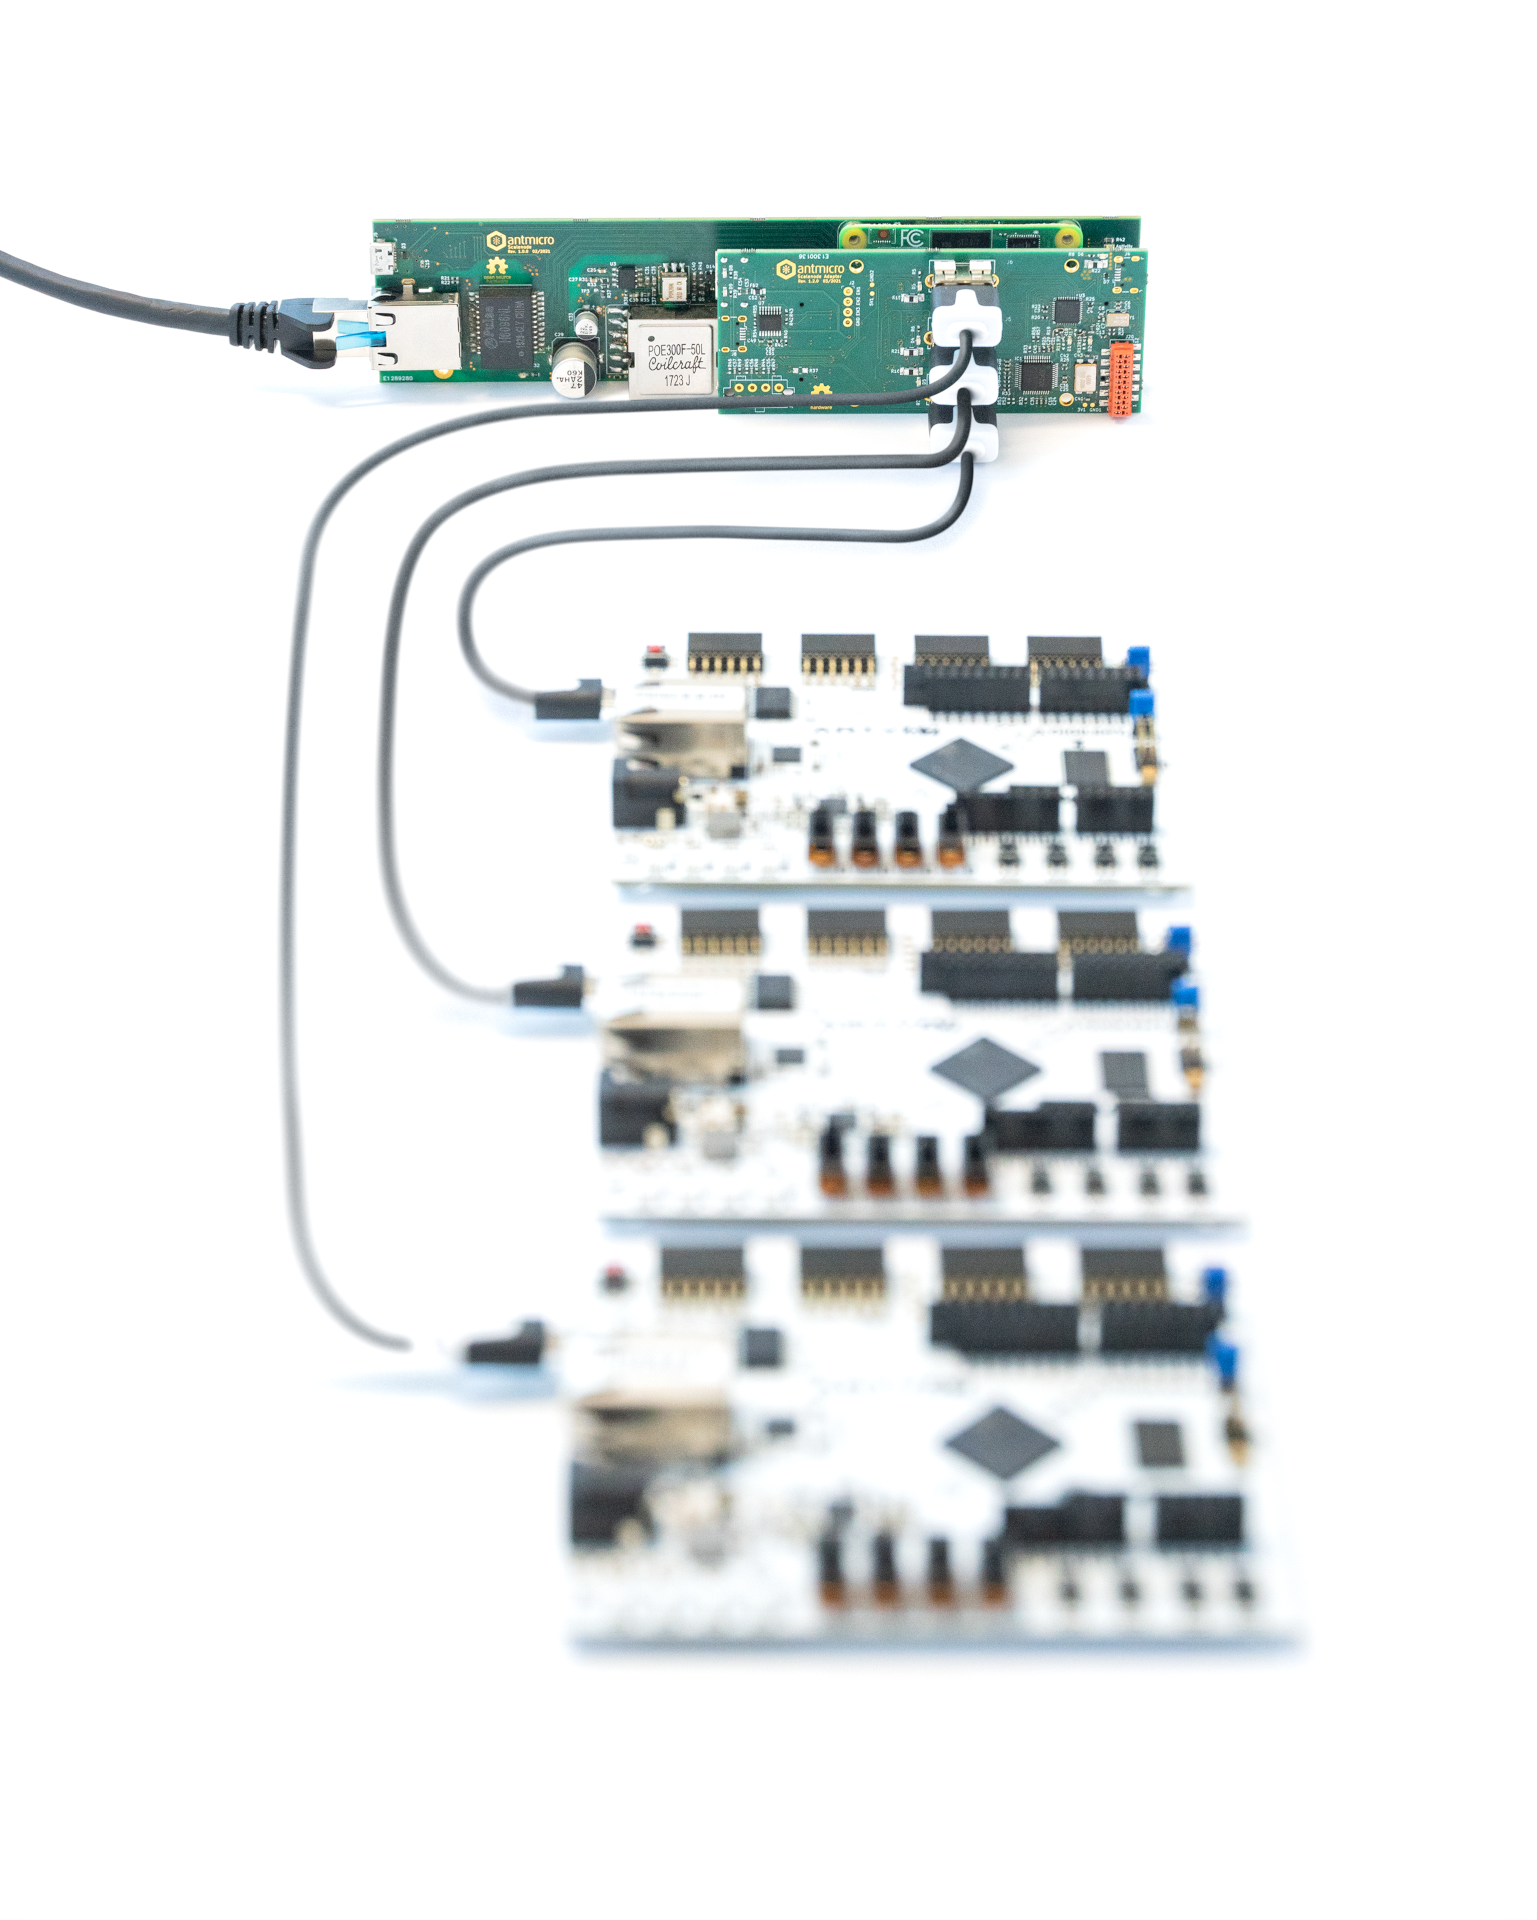 Antmicro Scalenode platform with Artix-7 boards connected